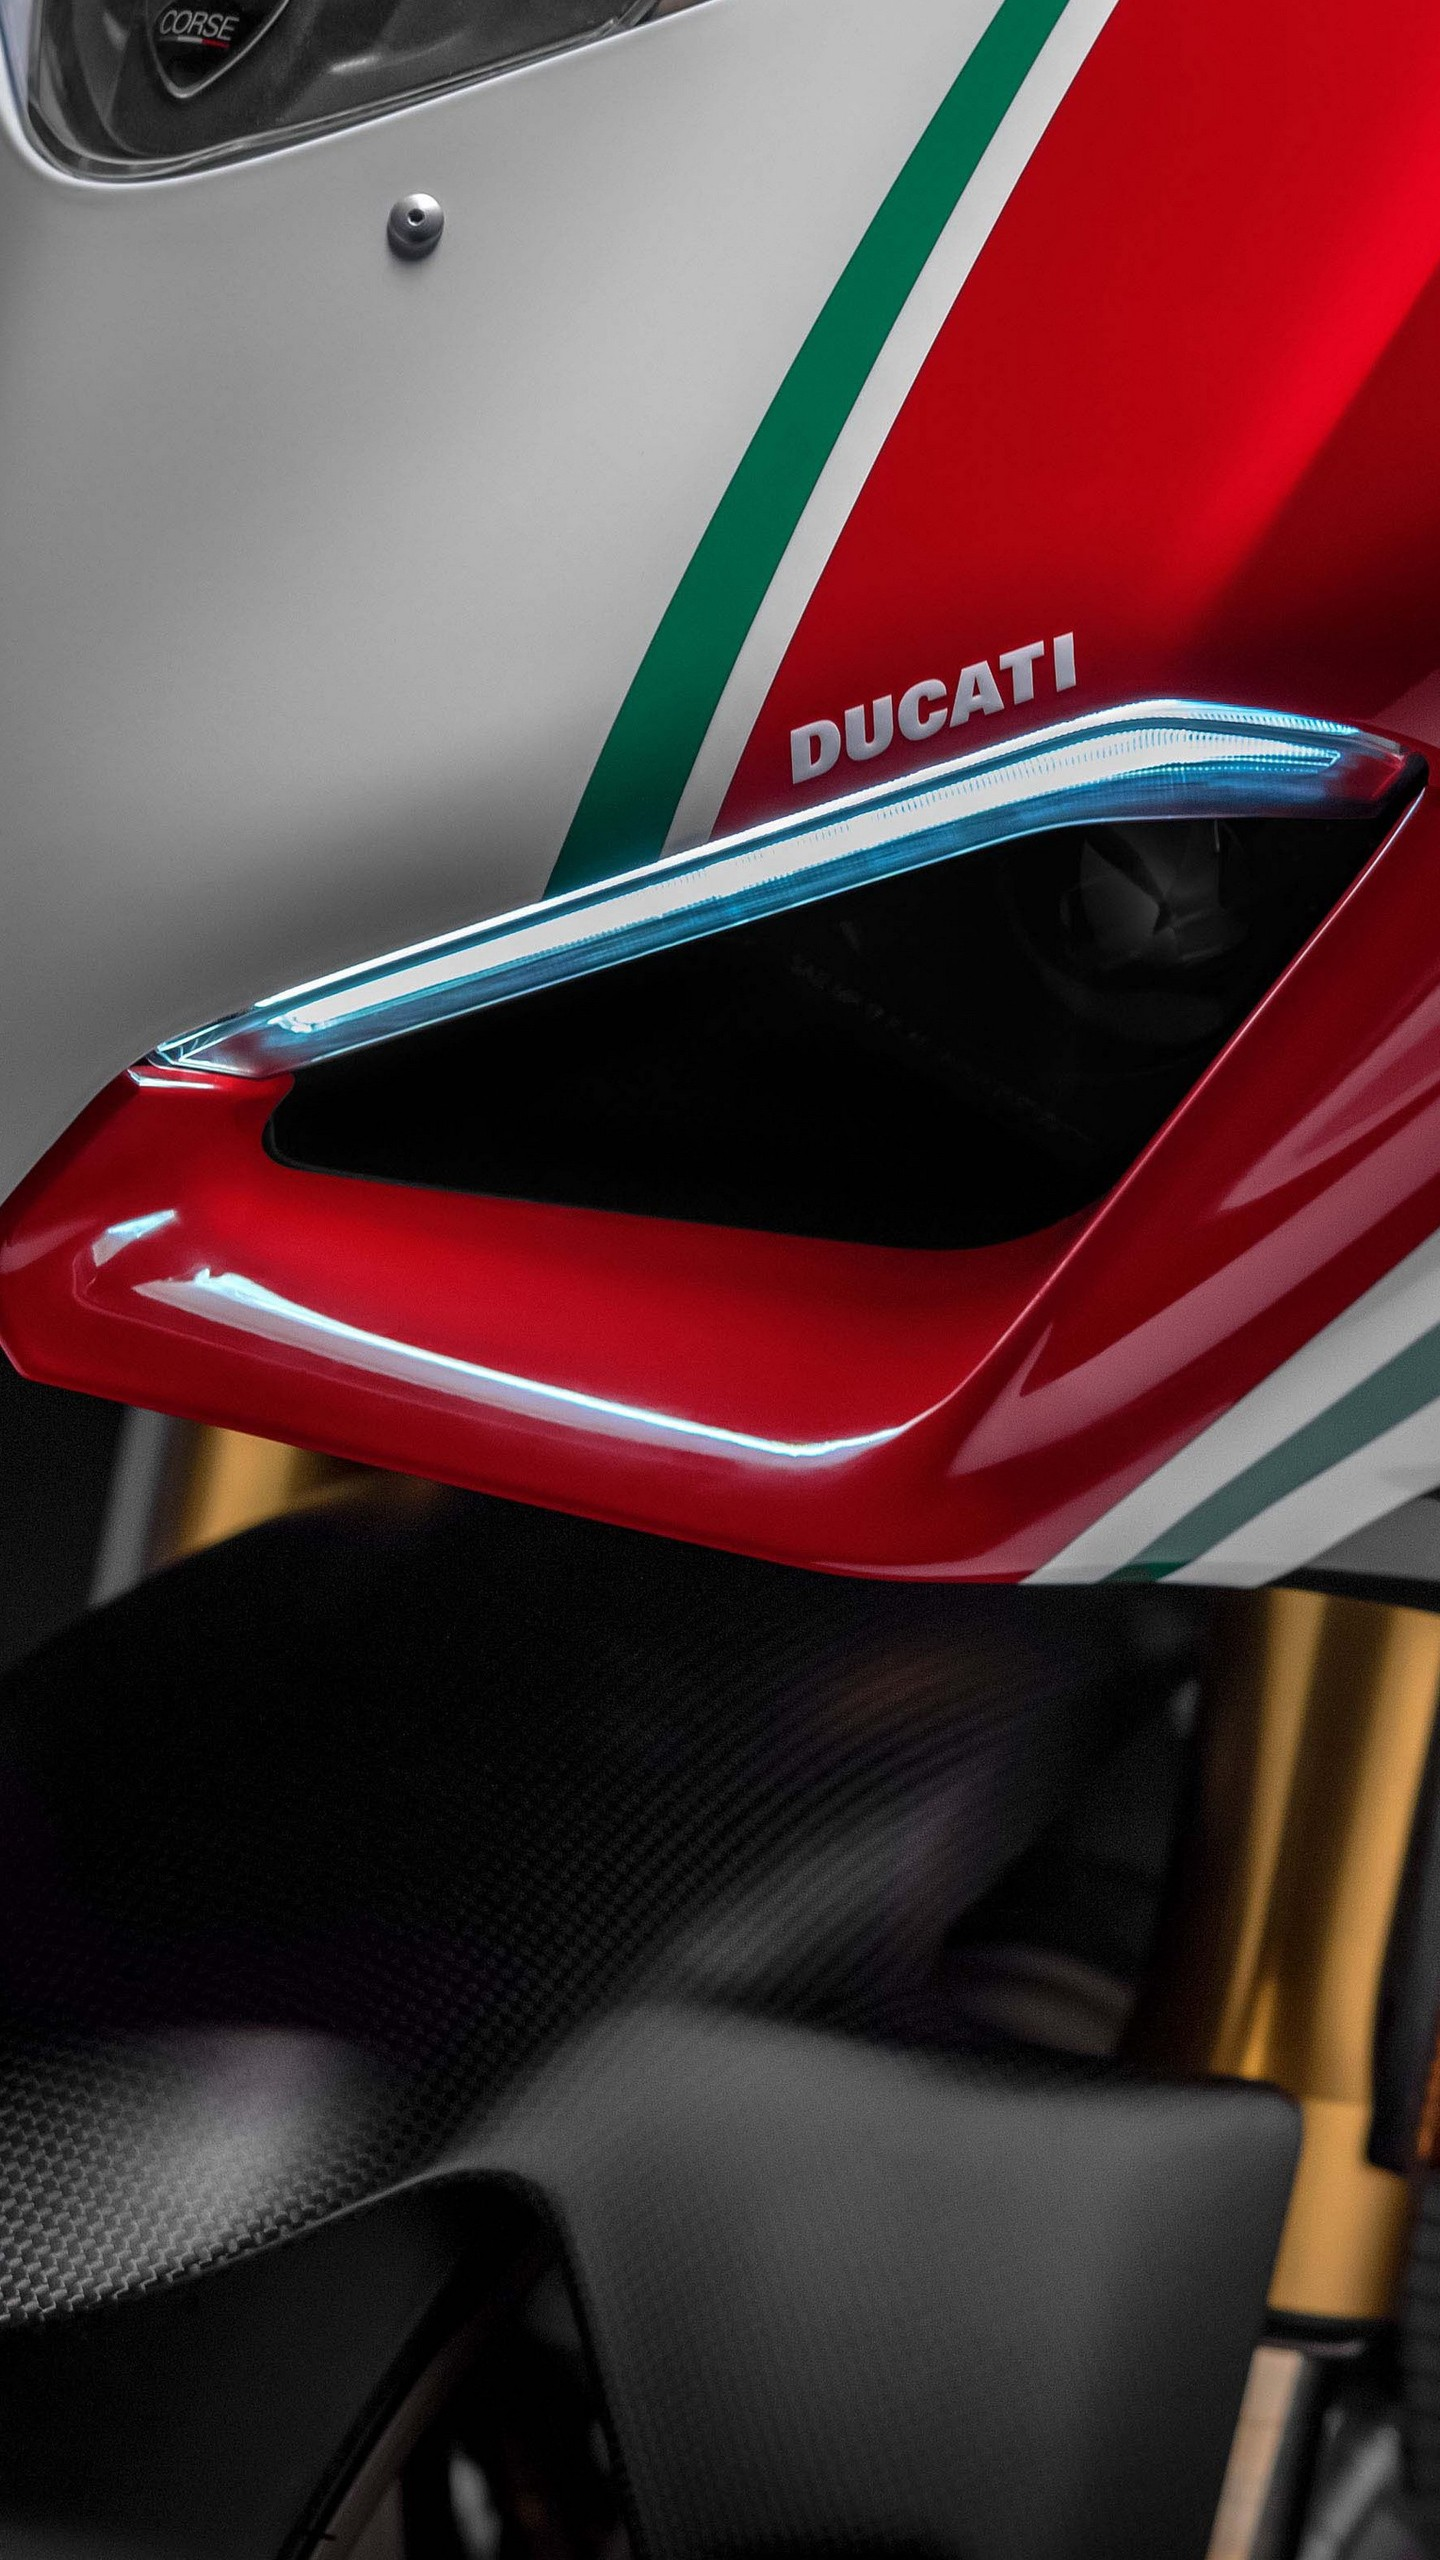 Most Popular Wallpaper For Iphone 6 Ducati Panigale V4 Speciale 2018 4k Wallpapers Hd